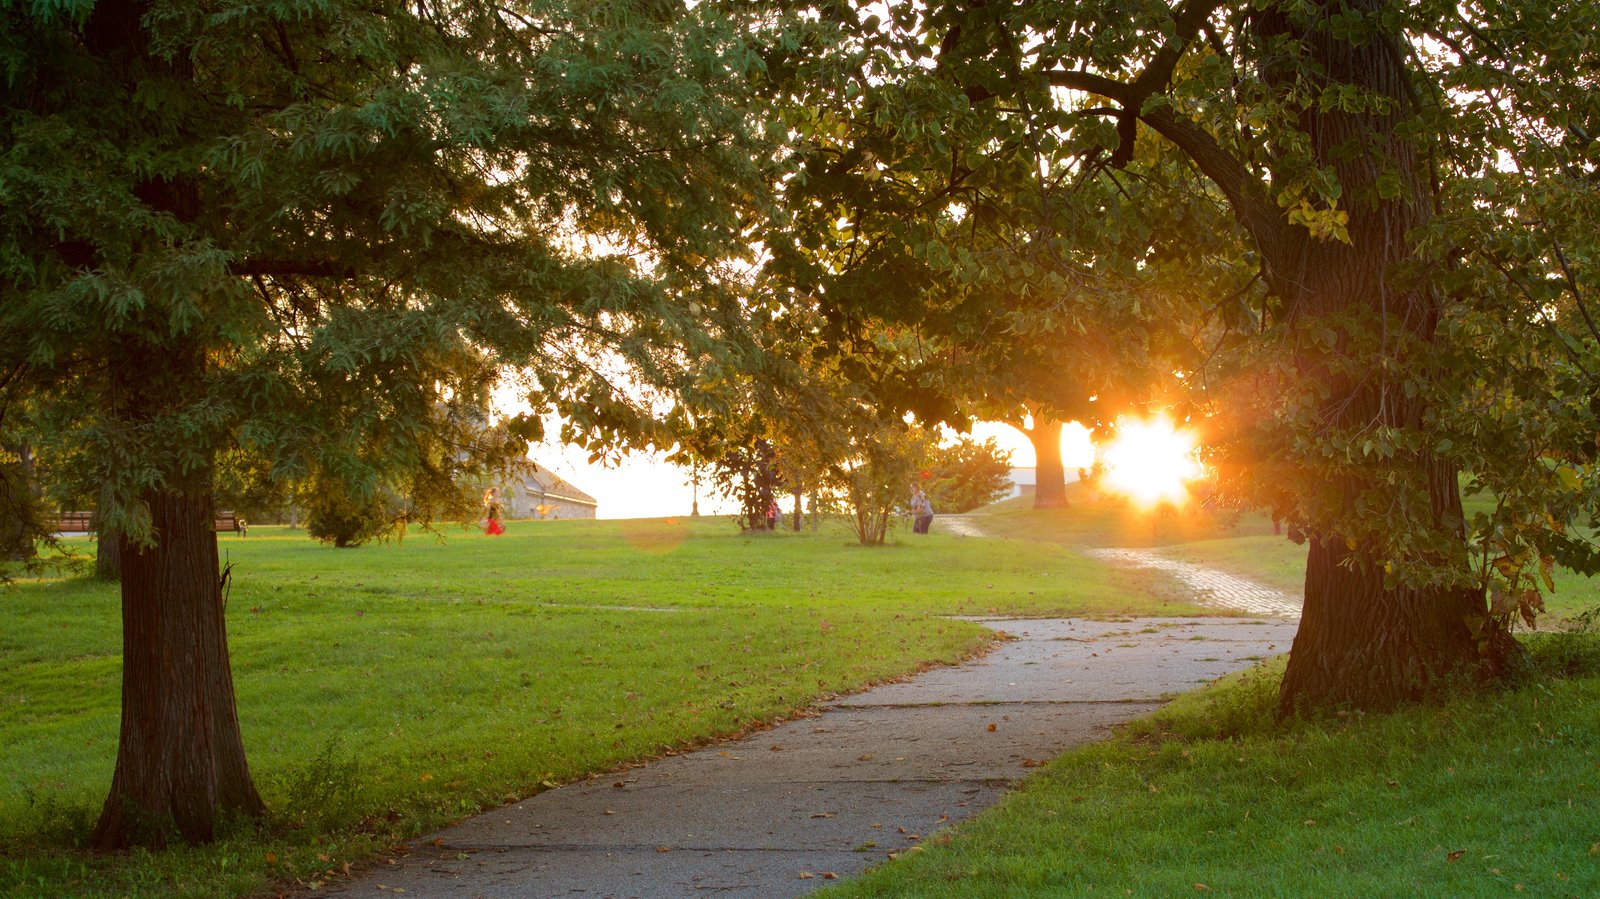 Patterson Park showing a garden and a sunset